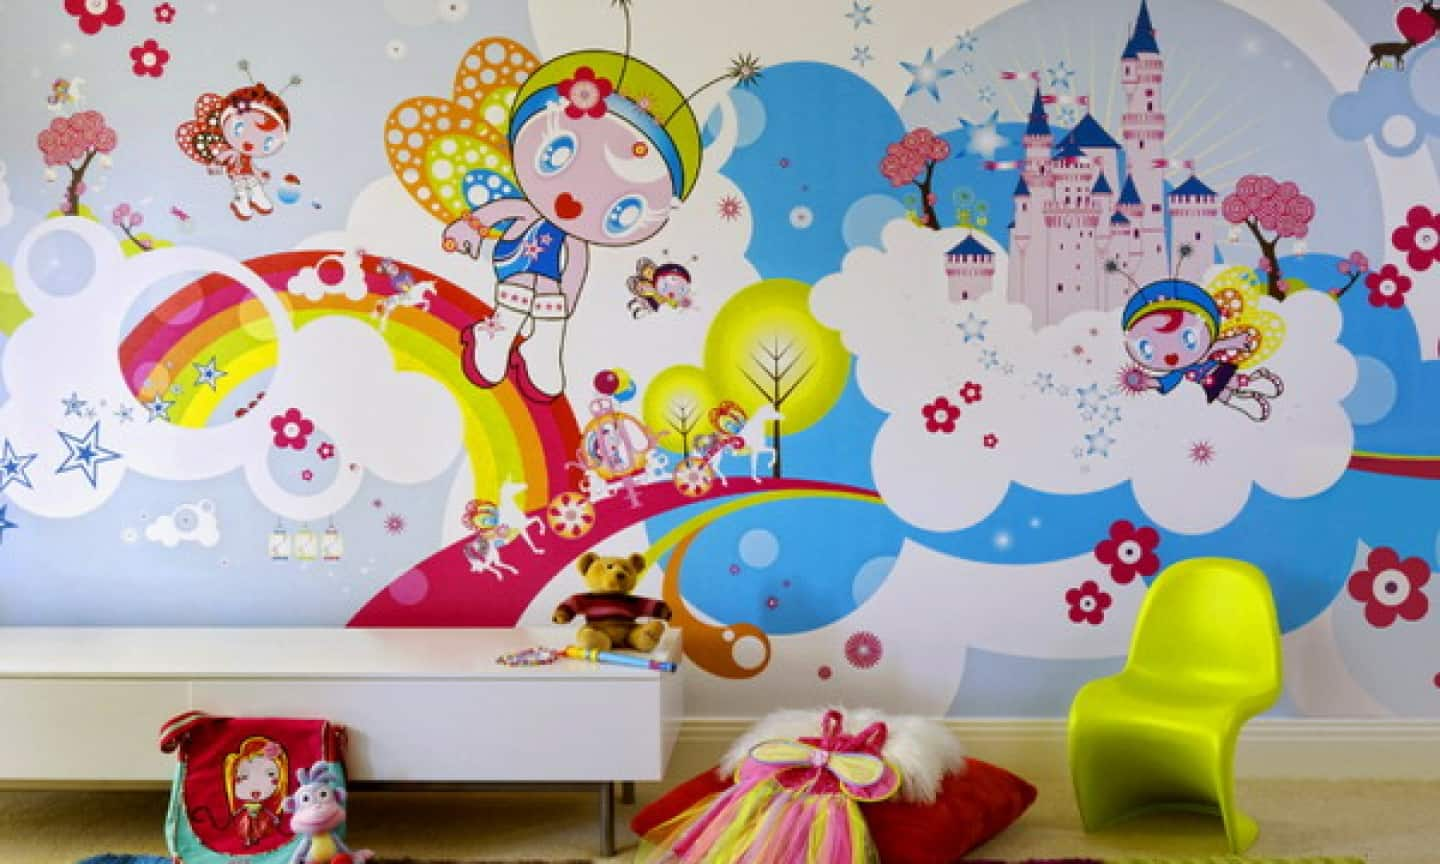 10 Beautiful Wallpaper Designs For Bedrooms For Kids 73 With Additional Furniture Home Design Ideas with Wallpaper Designs For Bedrooms For Kids